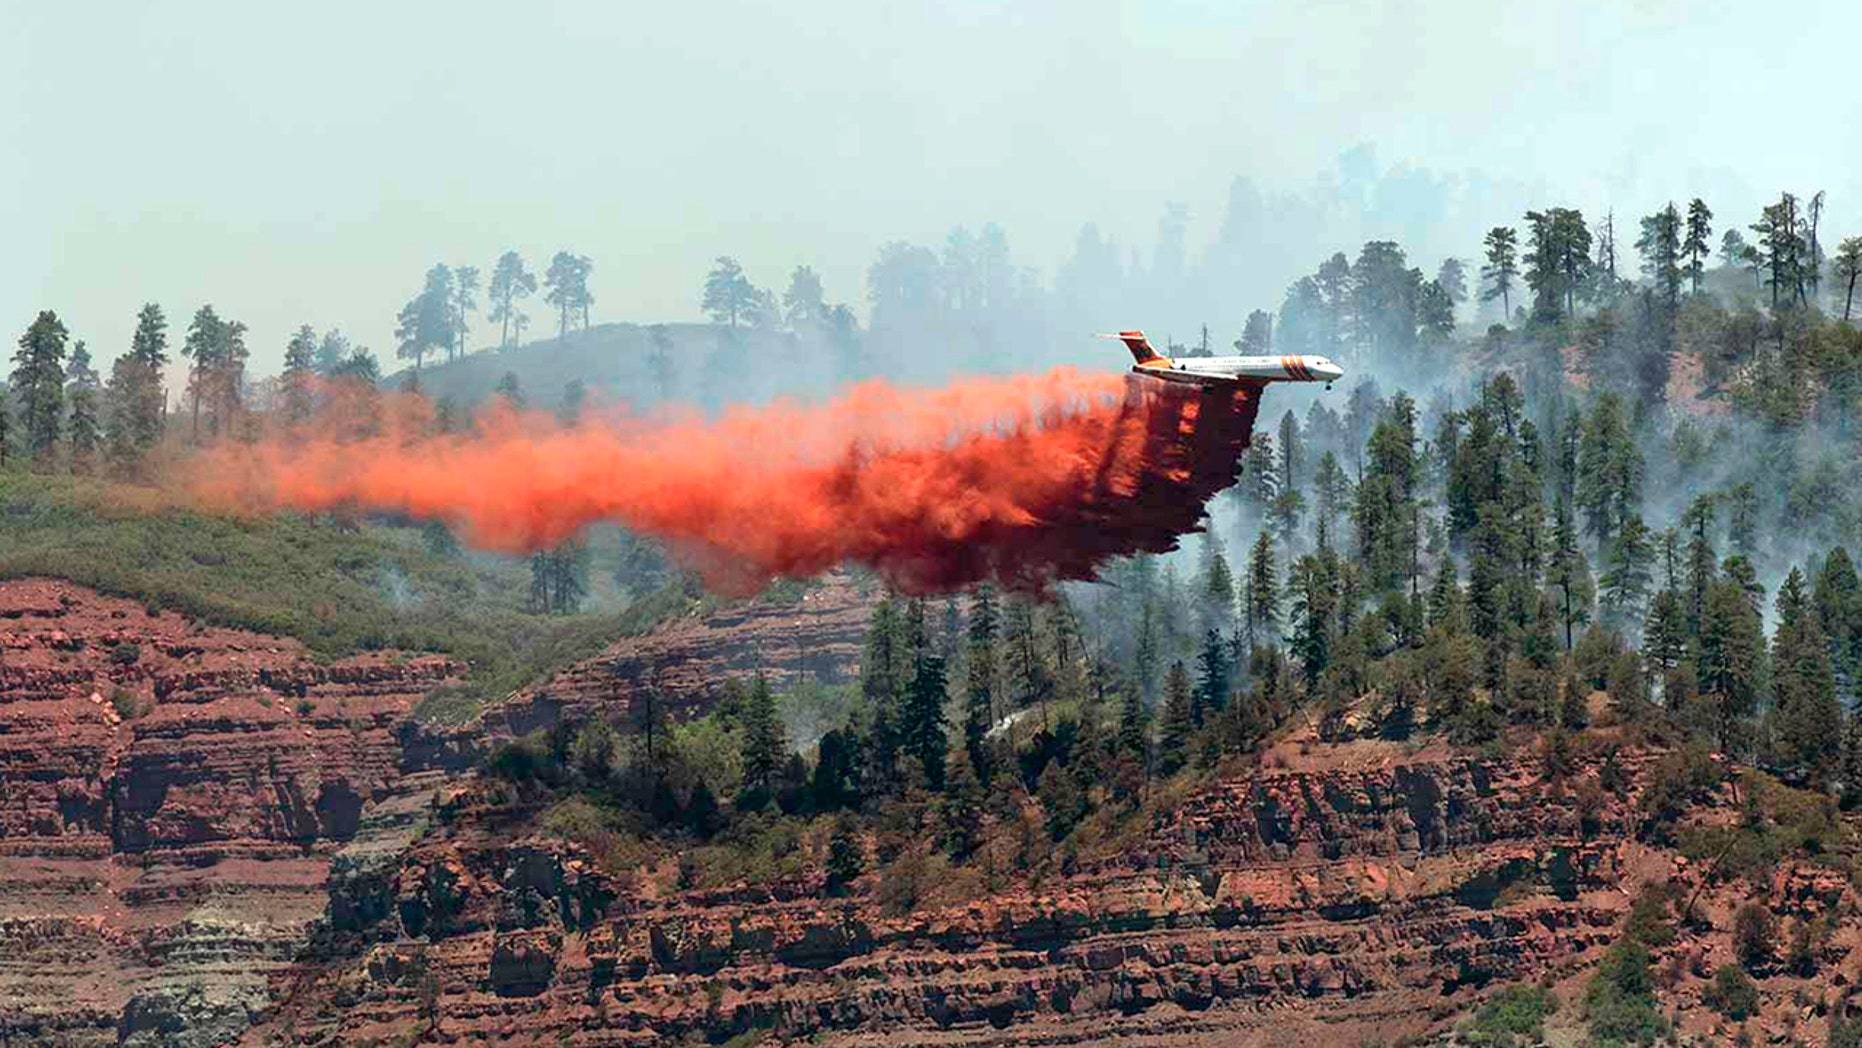 In this photo provided by Jerry Day, an aircraft makes a fire retardant drop on a wildfire in the hills and forests near Durango, Colo., on Friday.